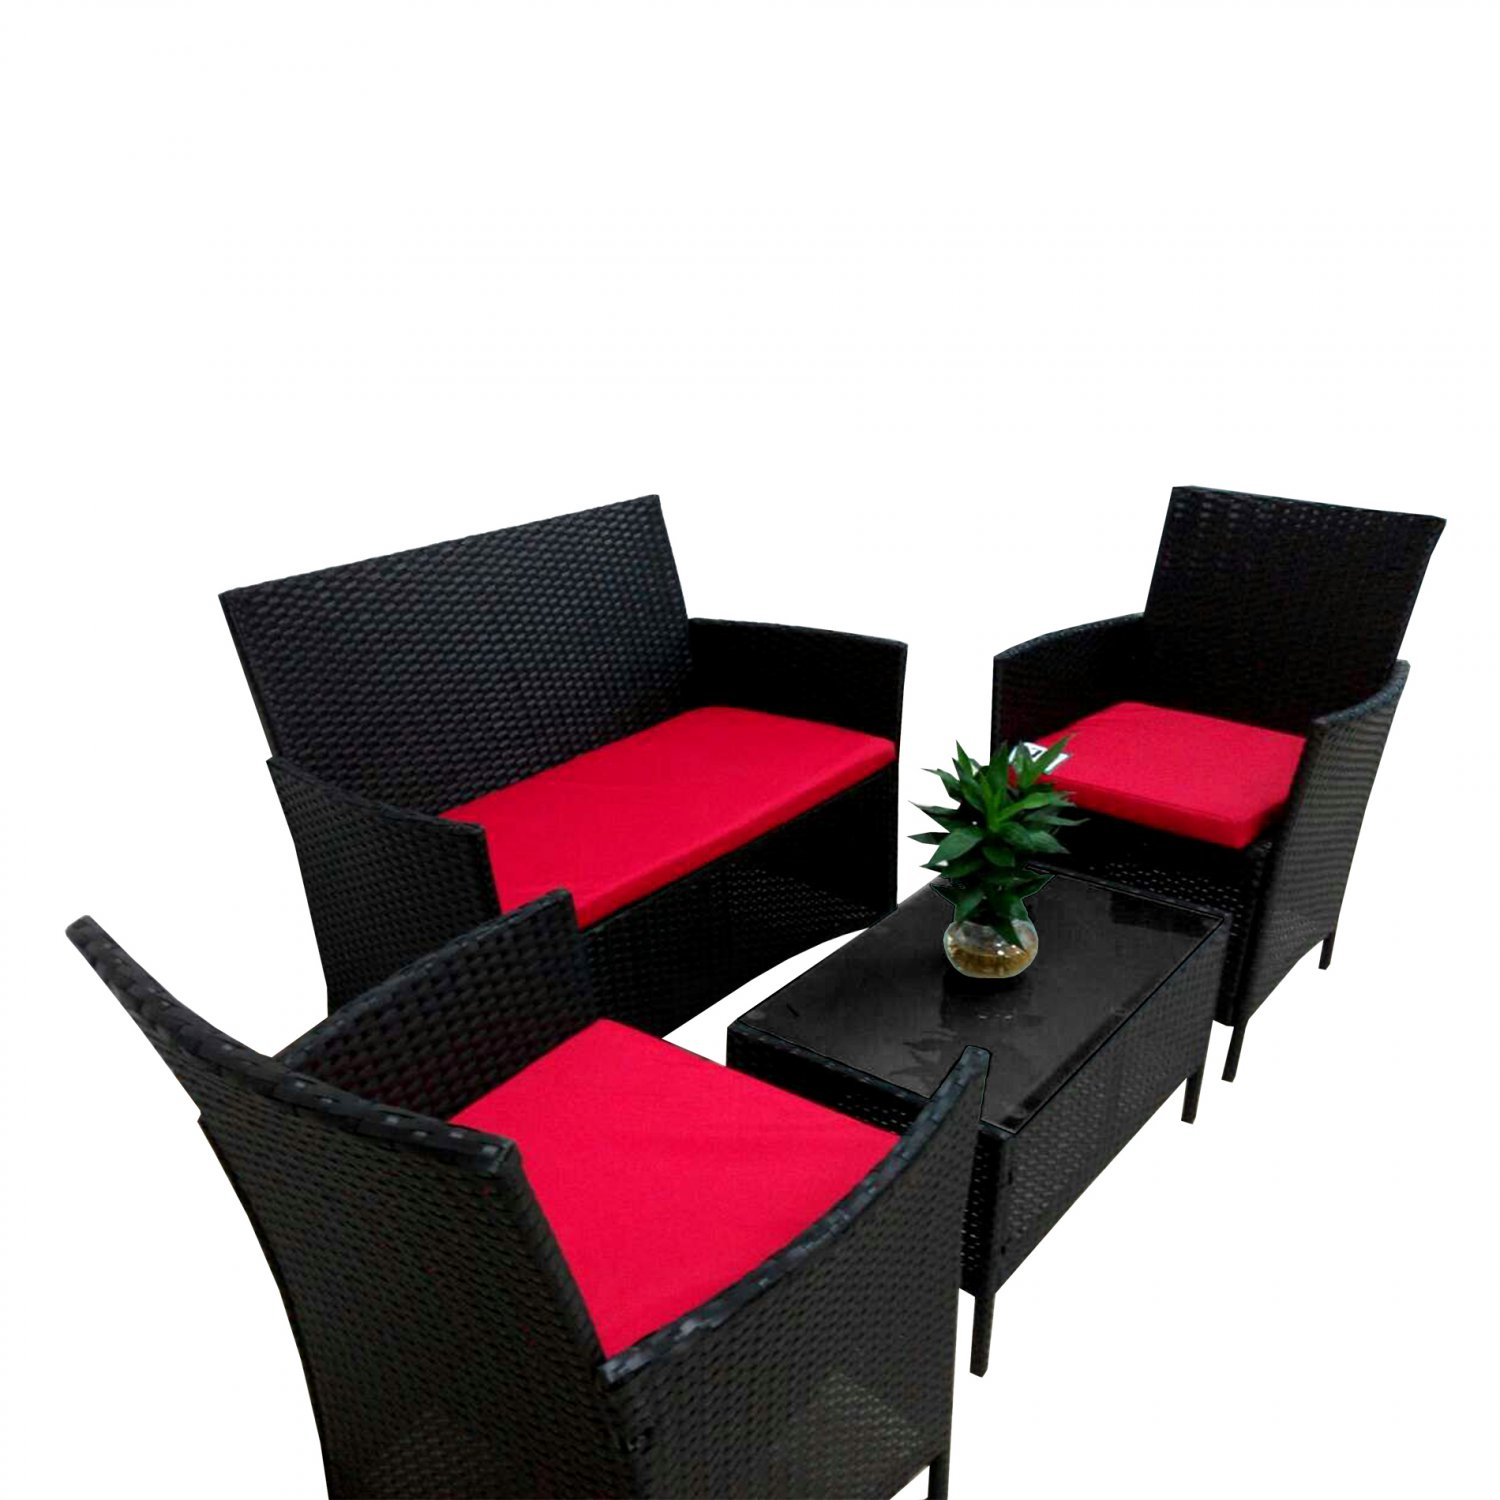 4PC Cushioned Outdoor Patio Garden Furniture PE Rattan Set Red(Ship US Country Only)#AS-17038-R#{4}